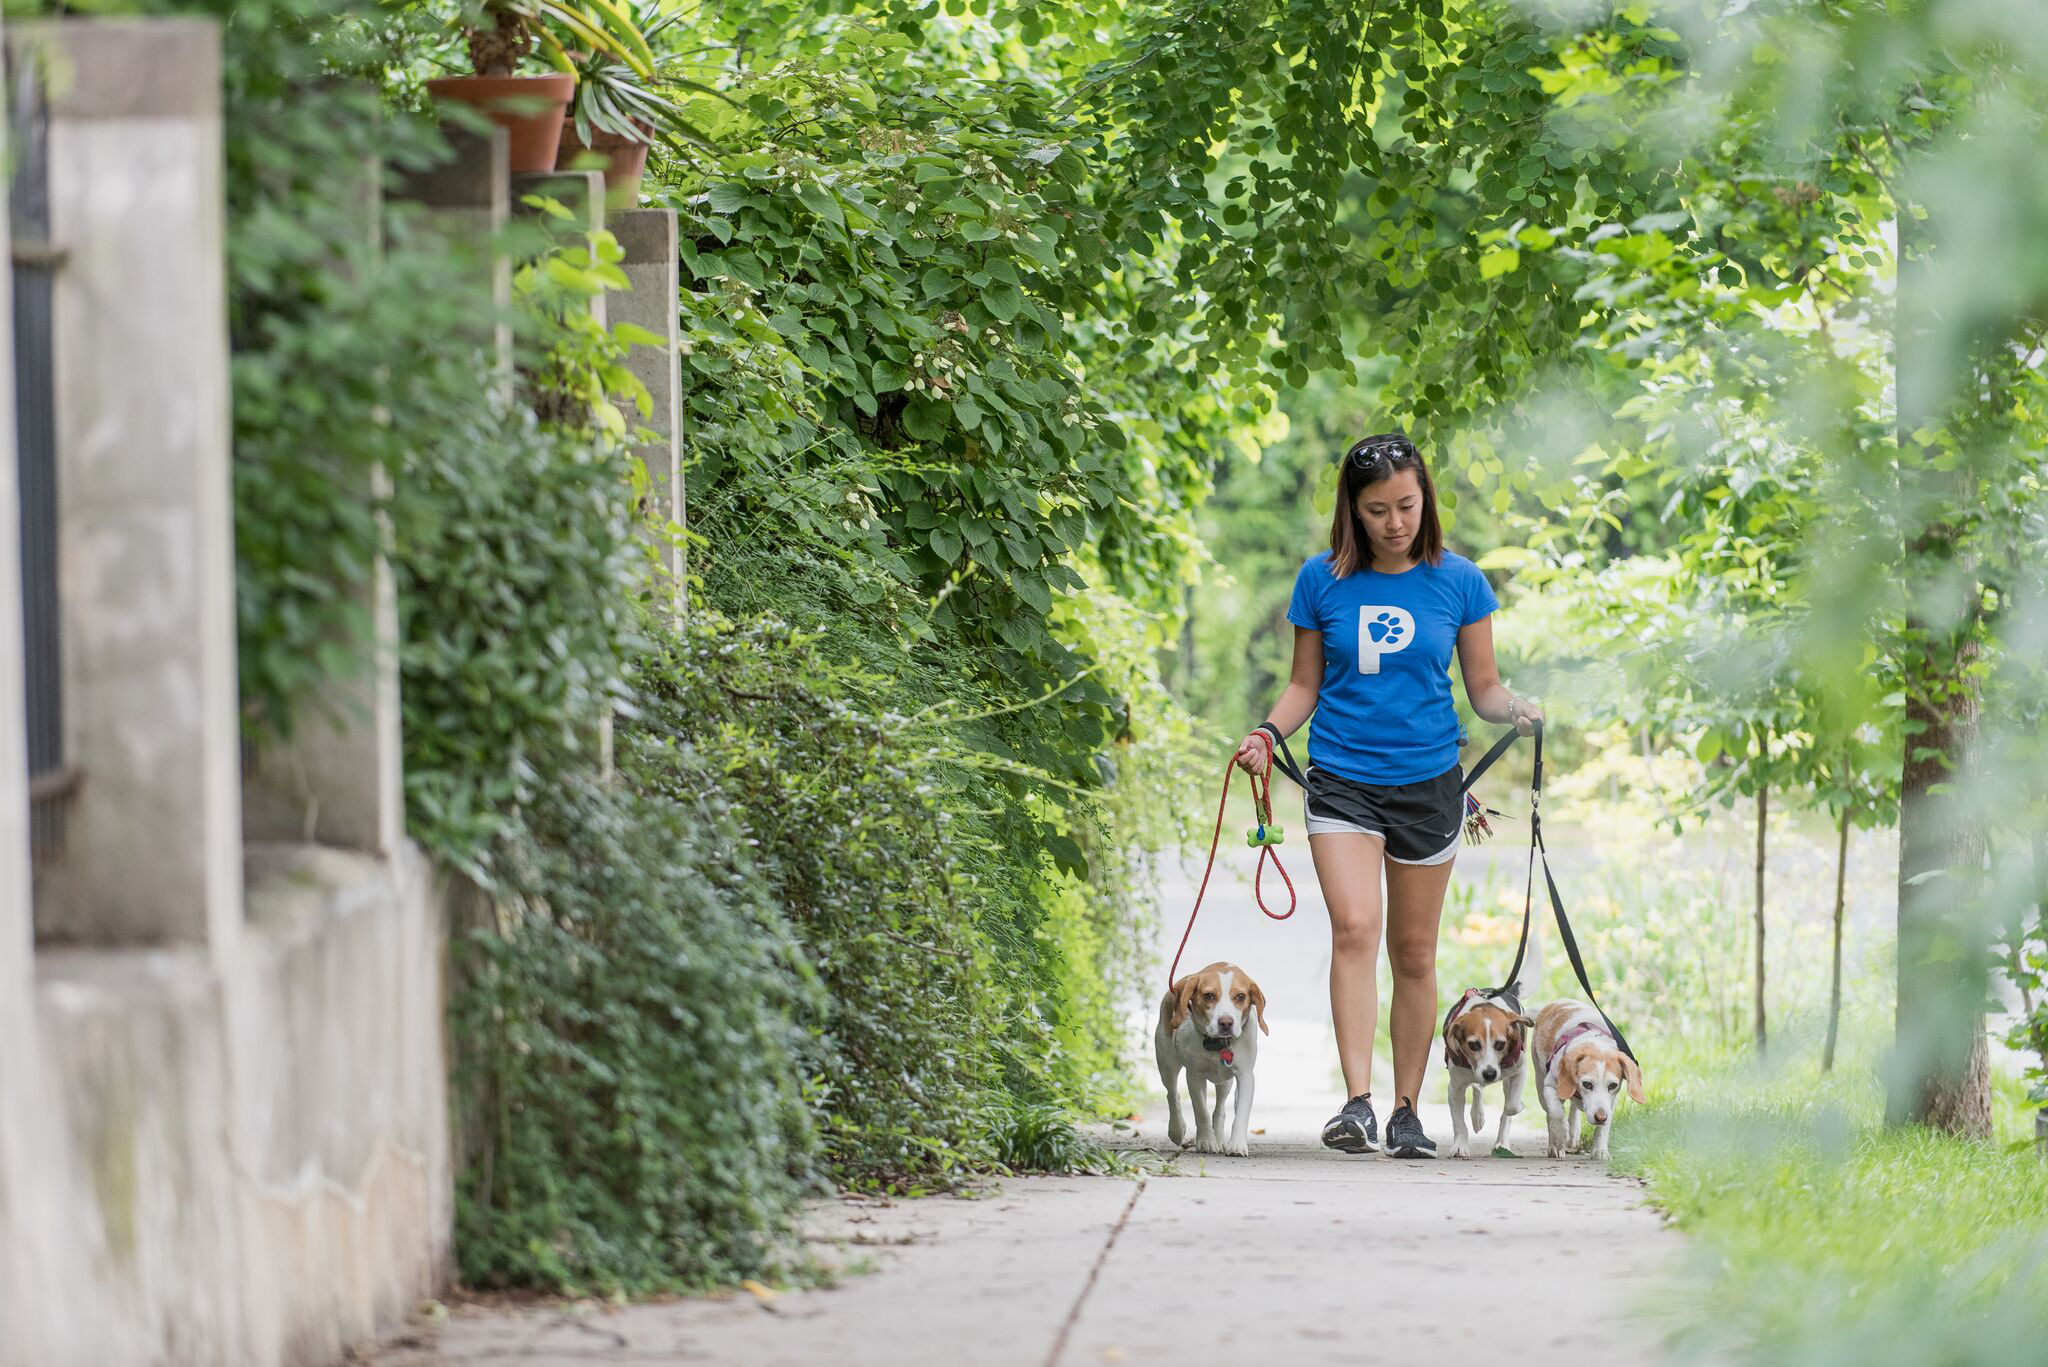 - Paws will host walking meet-and-greets in the heart of cuffing season: neighborhood hotspots.